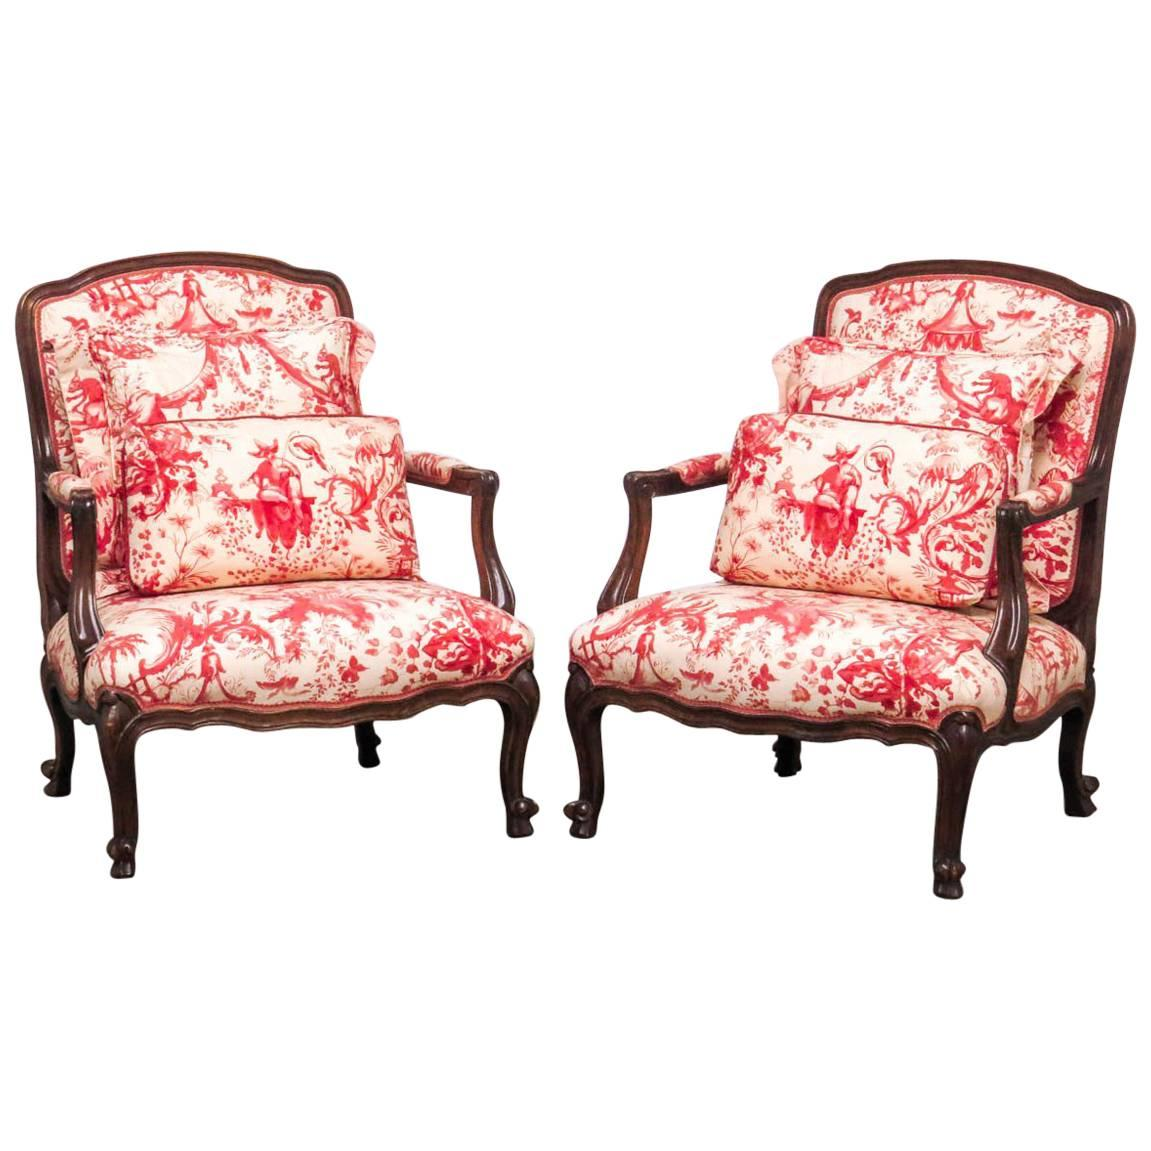 Fauteuils Toile Louis Xv Style Fauteuil Armchairs With Scalamandre Chinoiserie Toile